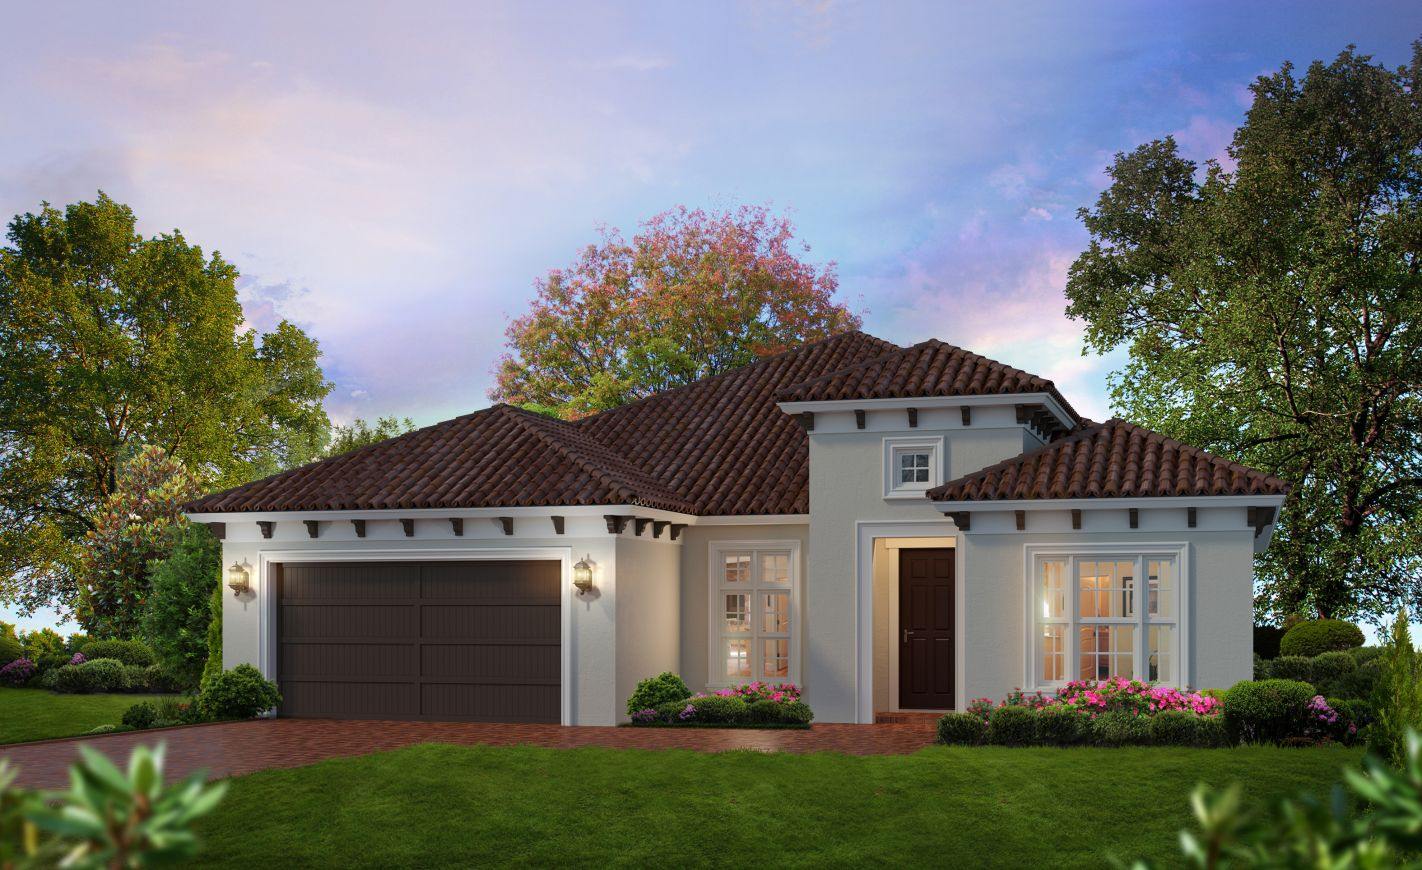 Palm Coast Homes for Sale - The Juliette II at The Conservatory